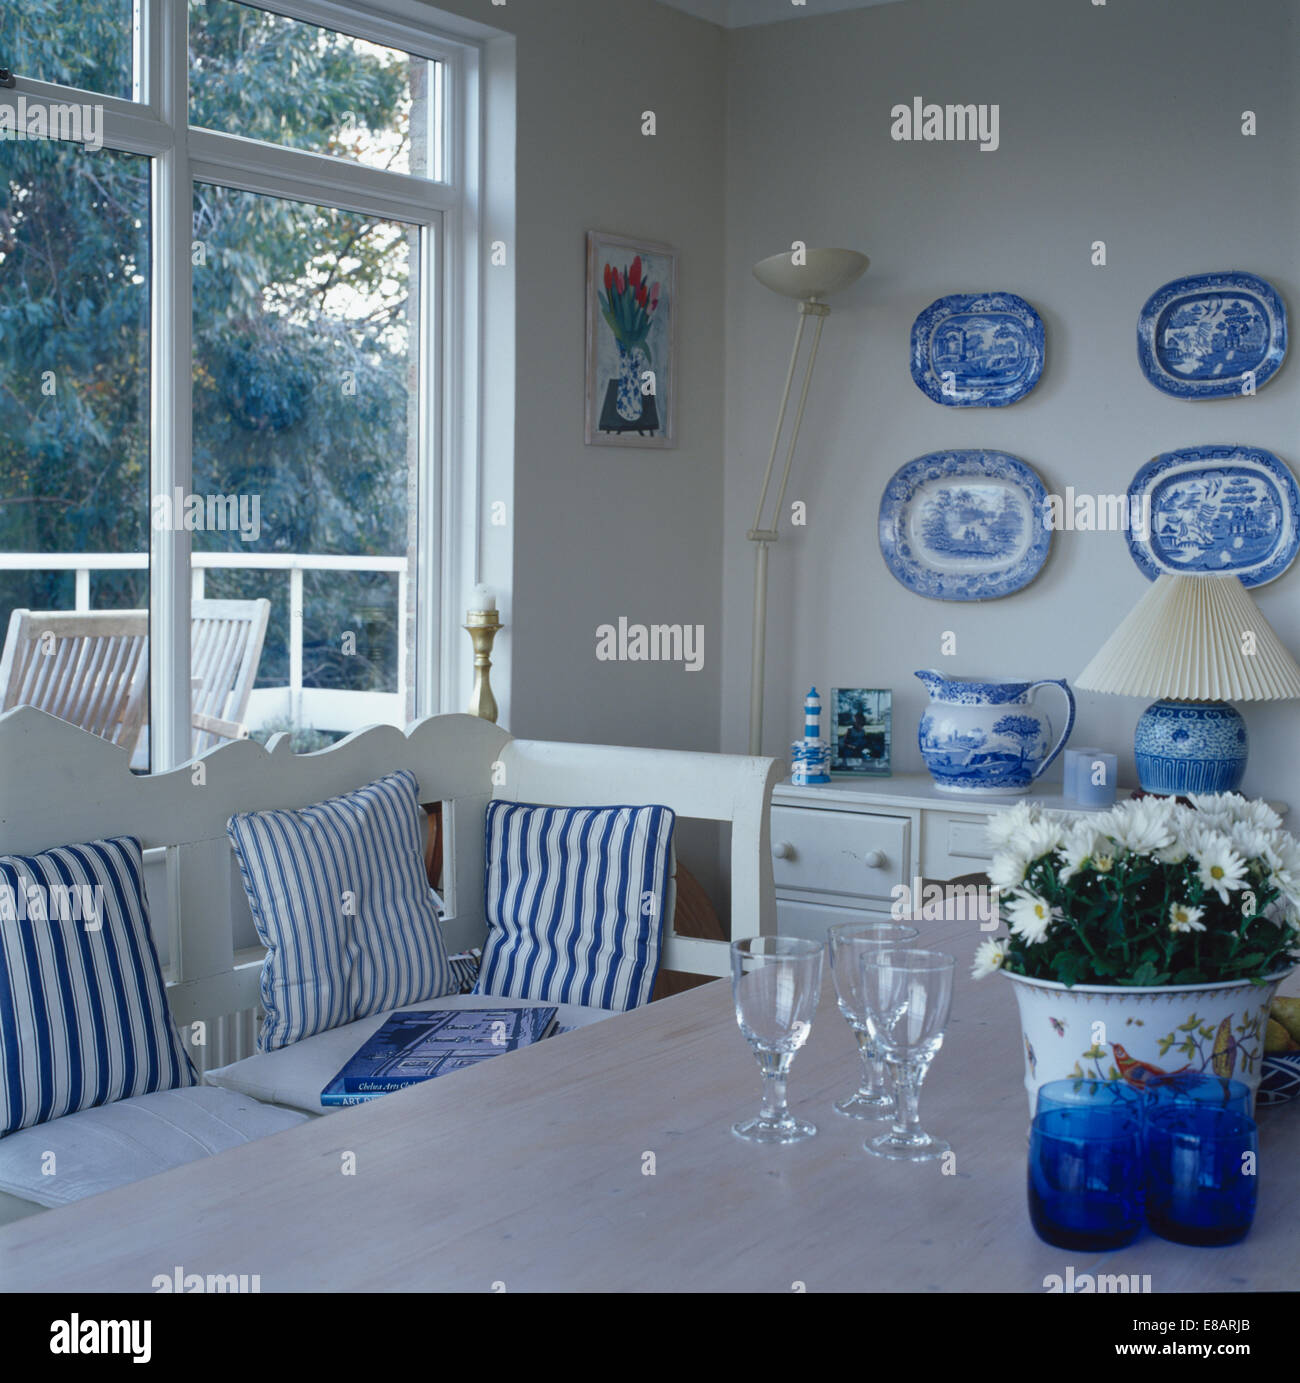 Collection Blue White Plates On Wall High Resolution Stock Photography And Images Alamy